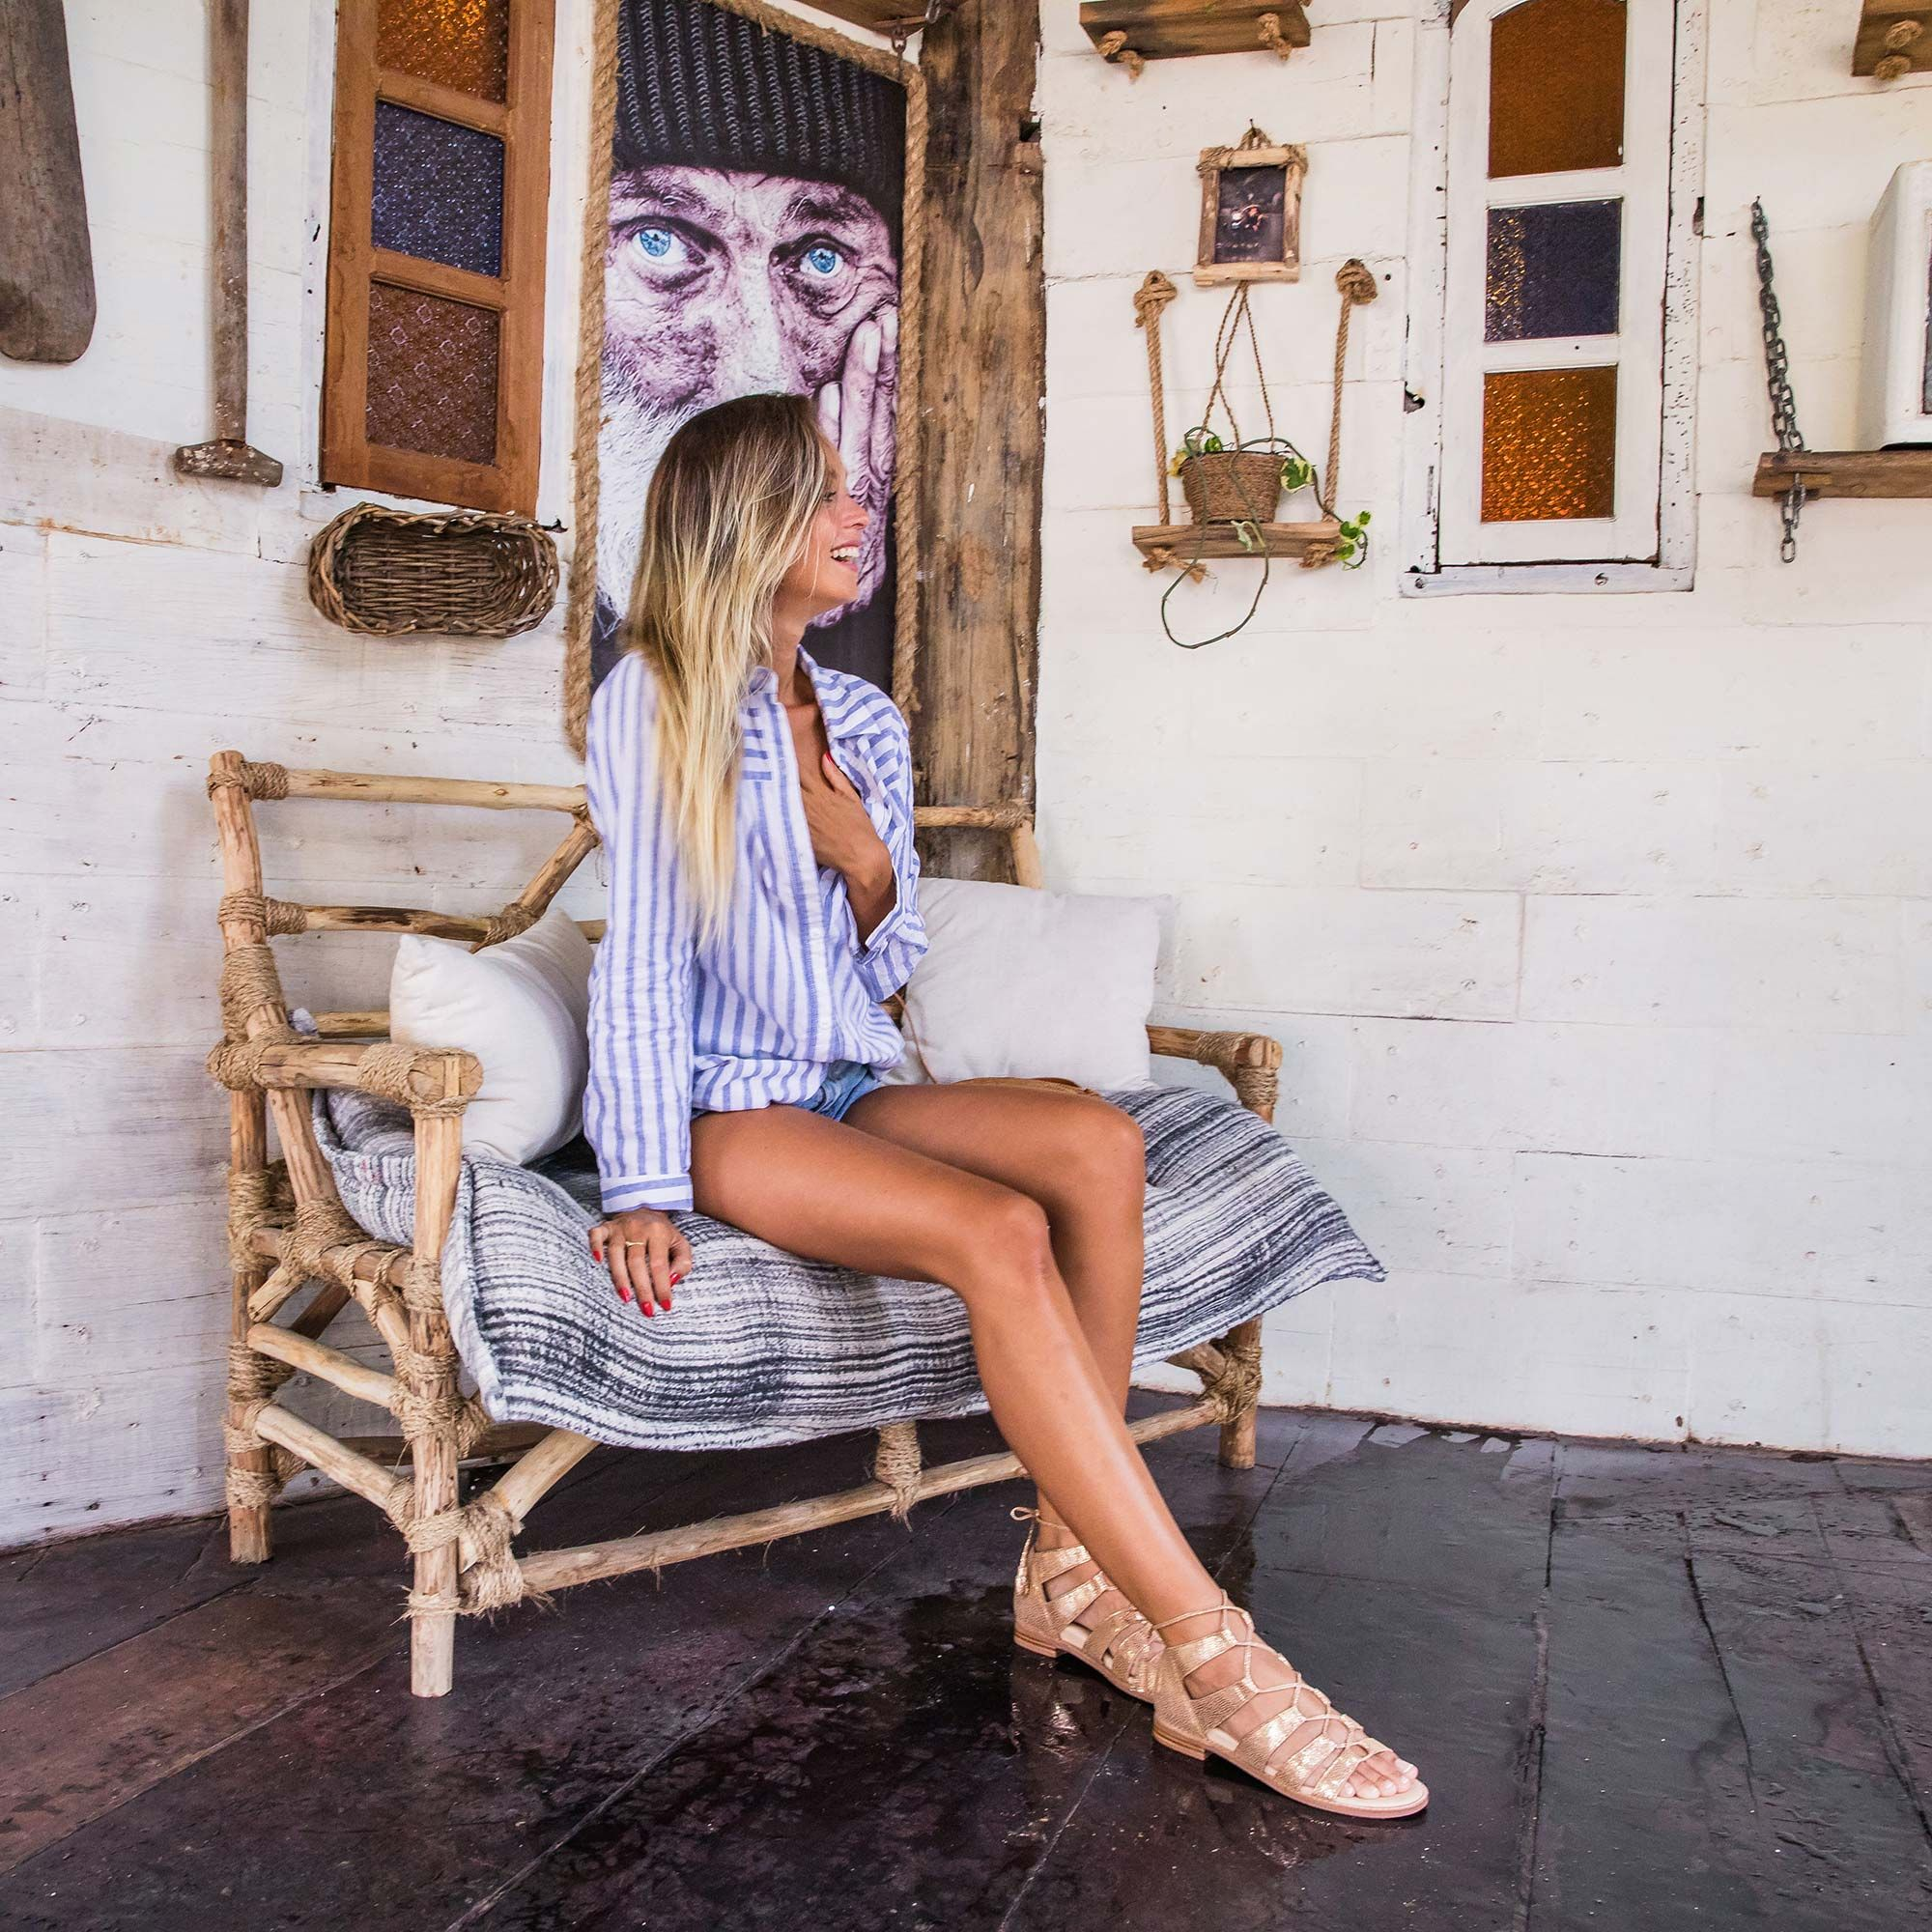 Bared_Footwear_La_Brisa_Bali_Travel_Summer_Womens_Campaign_Toucan_Rose_Gold_Lace_Up_Sandals